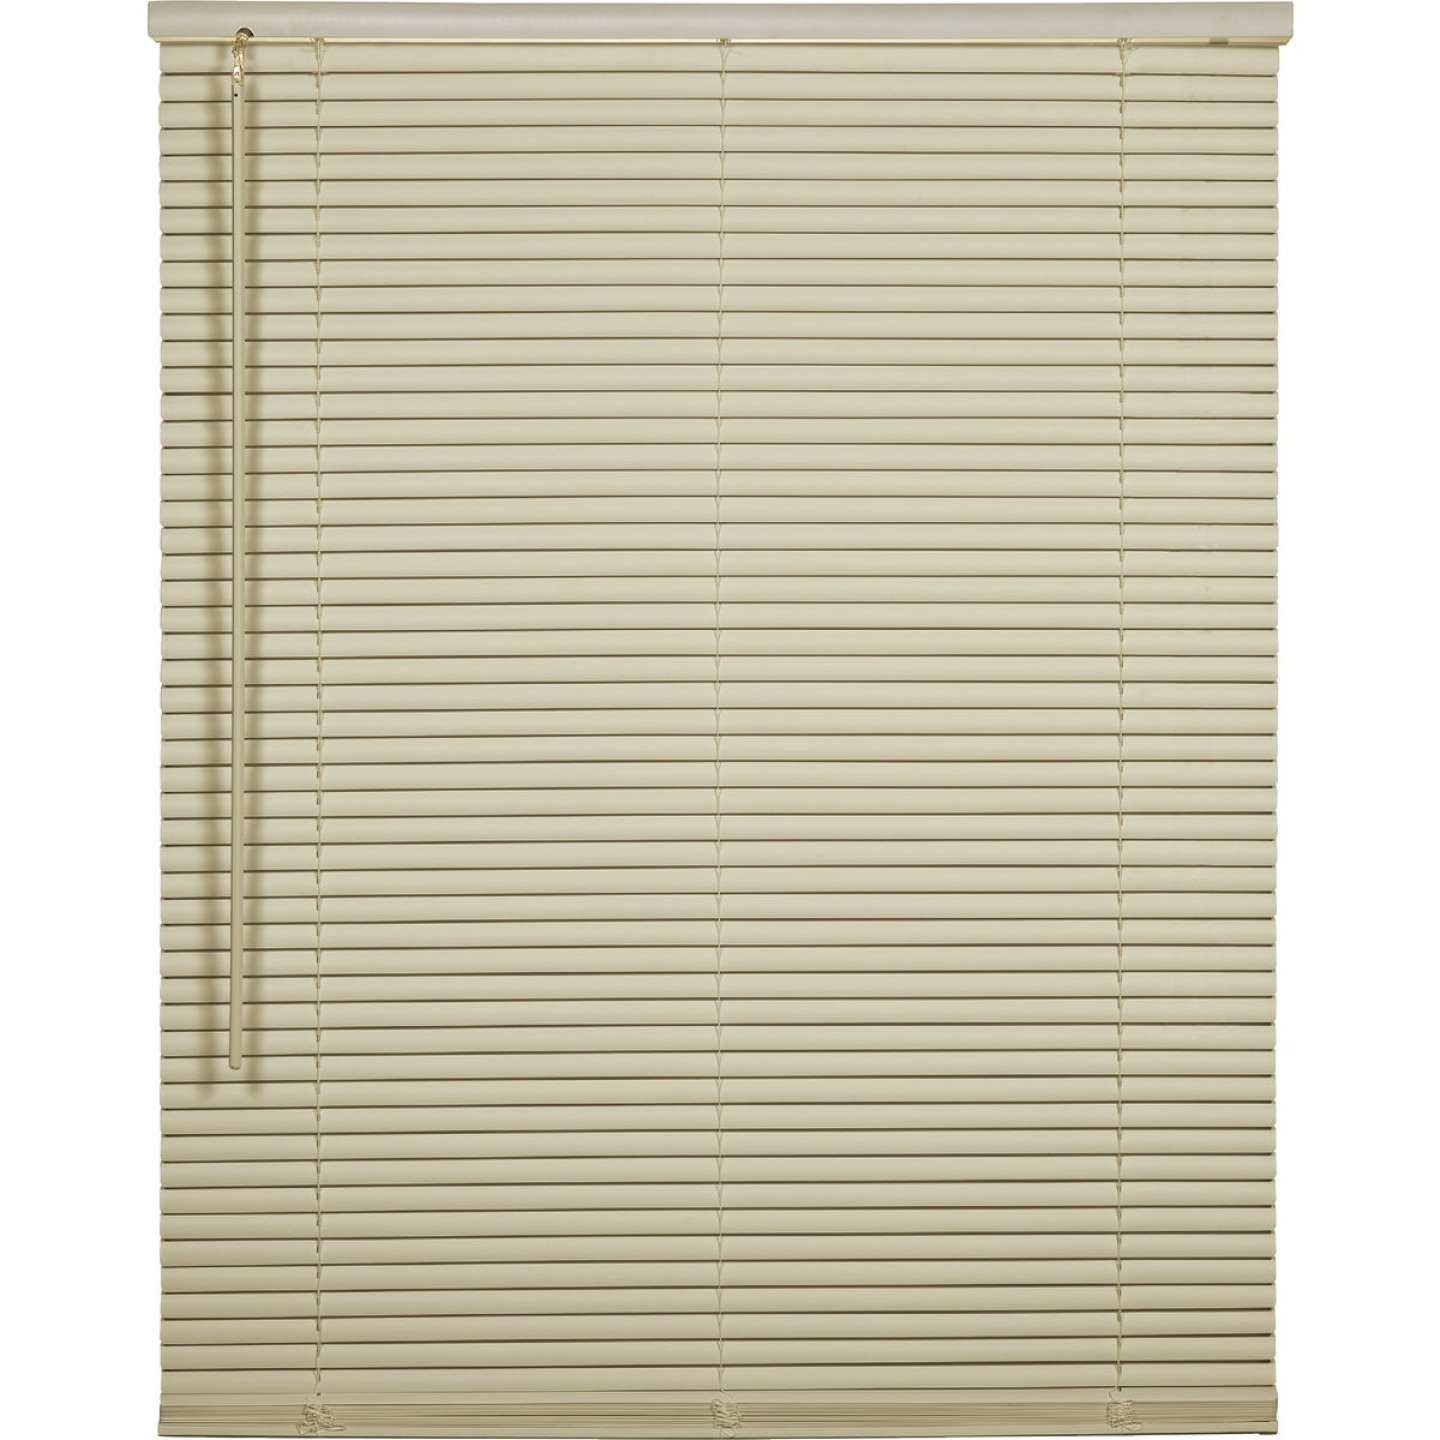 Home Impressions 35 In. x 64 In. x 1 In. Vanilla Vinyl Light Filtering Cordless Mini Blind Image 1